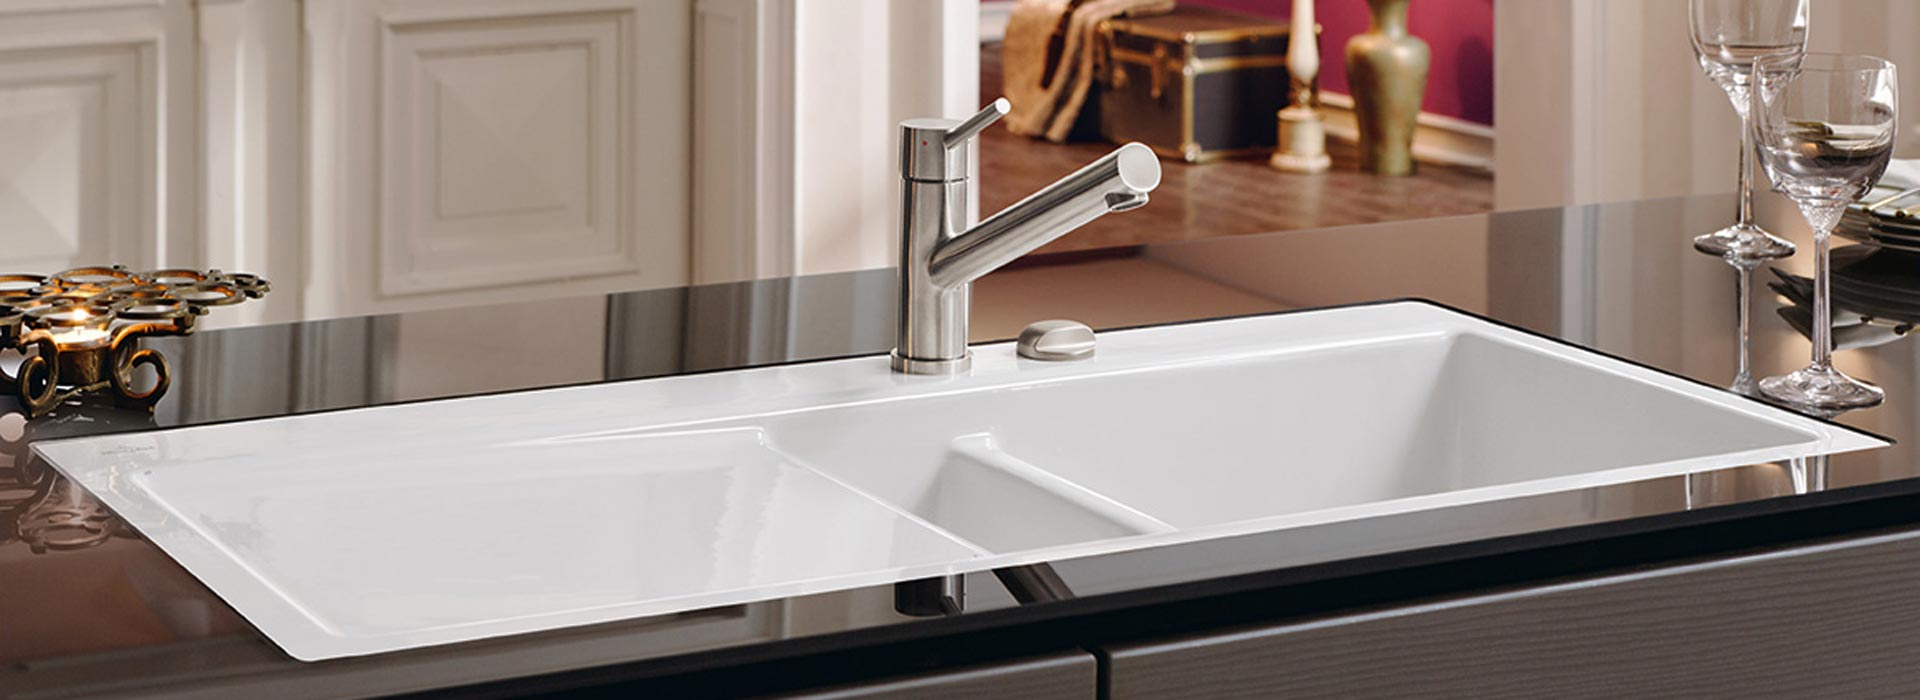 high quality ceramic sink from villeroy boch